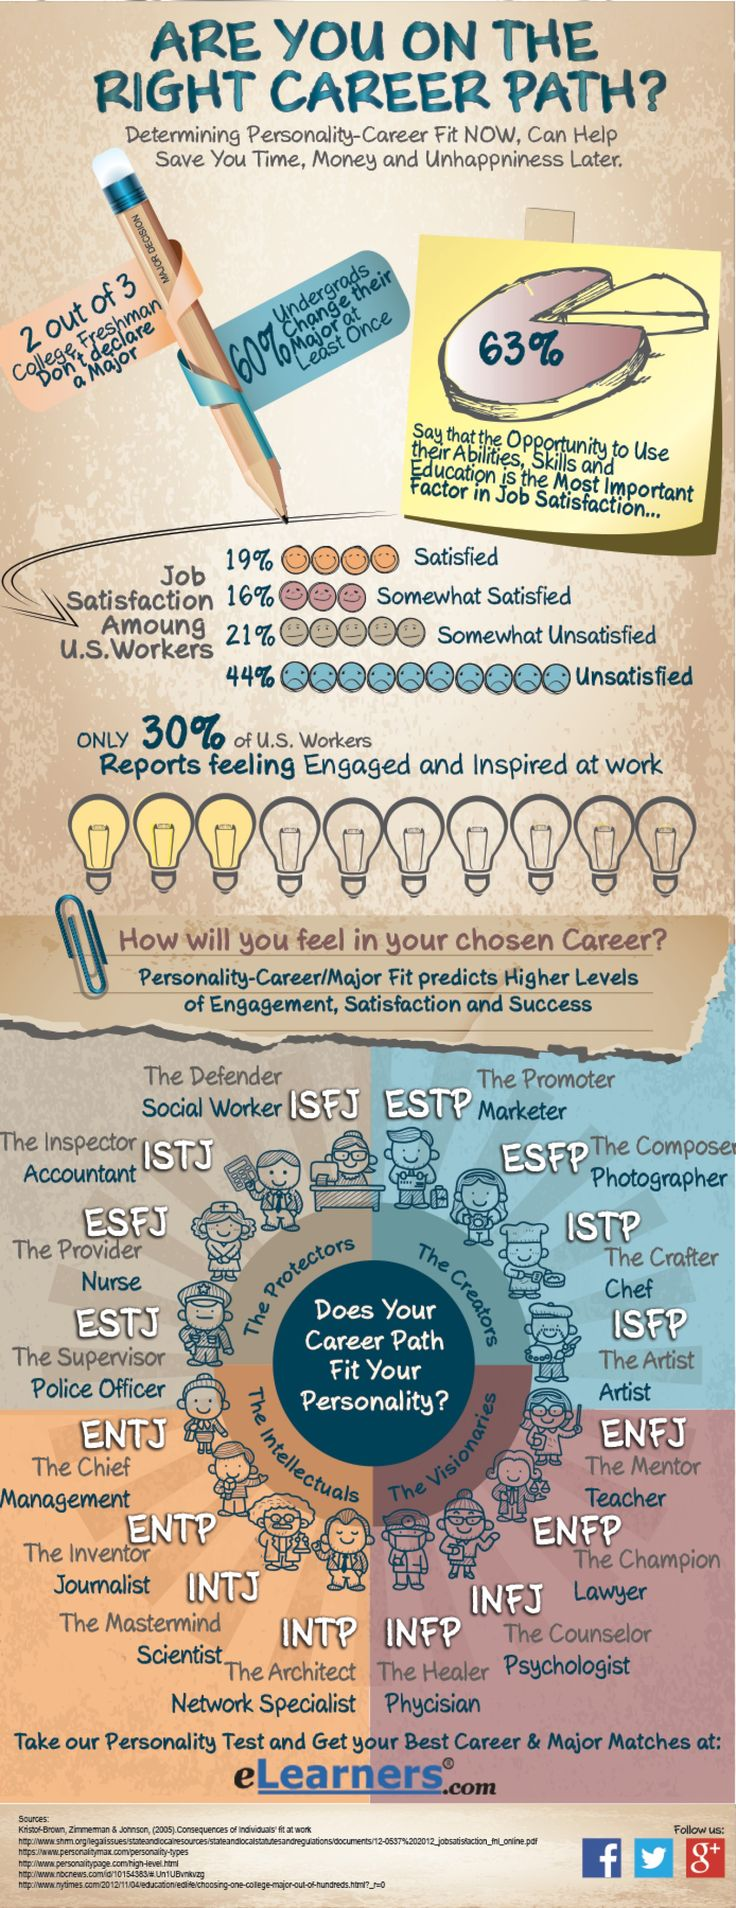 299 best images about Career on Pinterest | Resume tips, Career ...